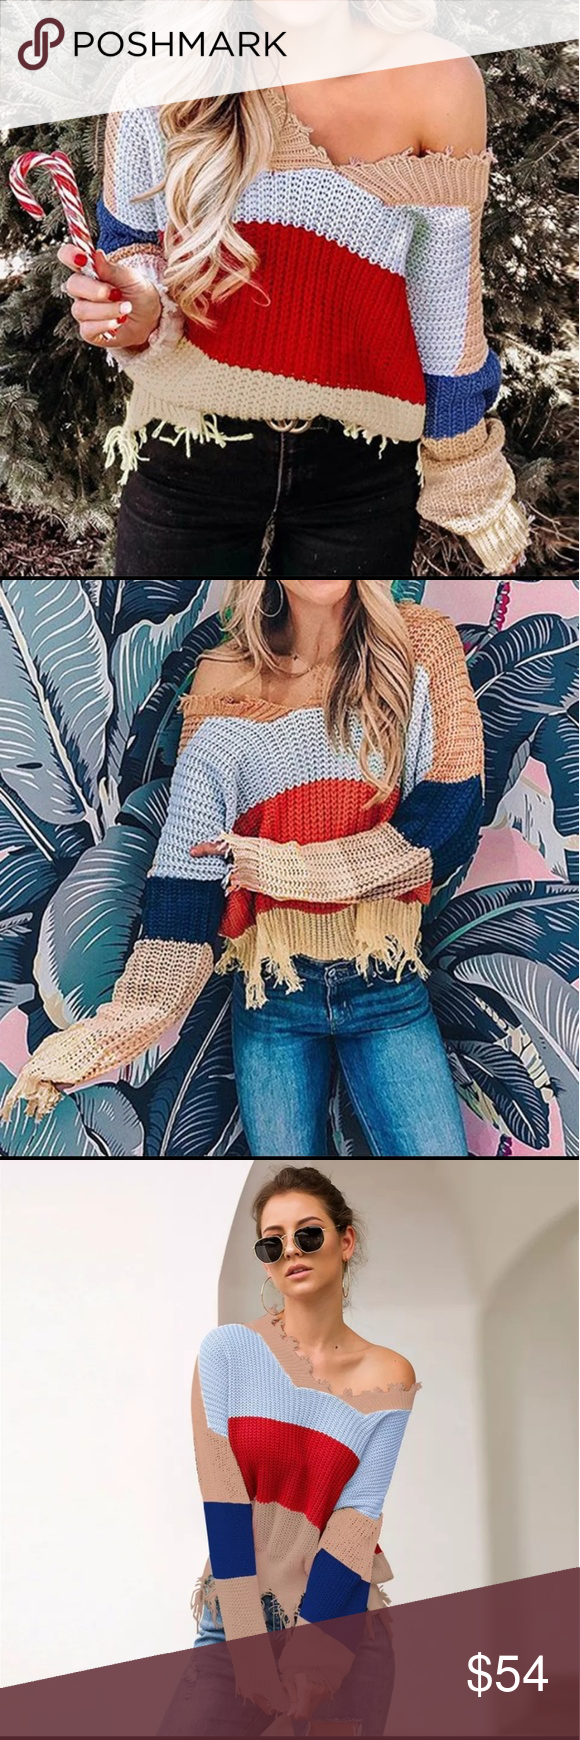 FALL FAV!  Frayed Fringed Oversized Knit Sweater Just in for fall 2019. Distressed  frayed oversized knit sweater.   Super soft and cozy knit blend of cotton/polyester/spandex Frayed v-neck and hem line Tan, blue, red and maize wide stripes. Beautiful weight - not too thick, not too thin. Size Med:  approx 22. long, 22 pit to pit Size Large: approx 24 long,  24 pit to pit. Sweaters #oversizedknitsweaters